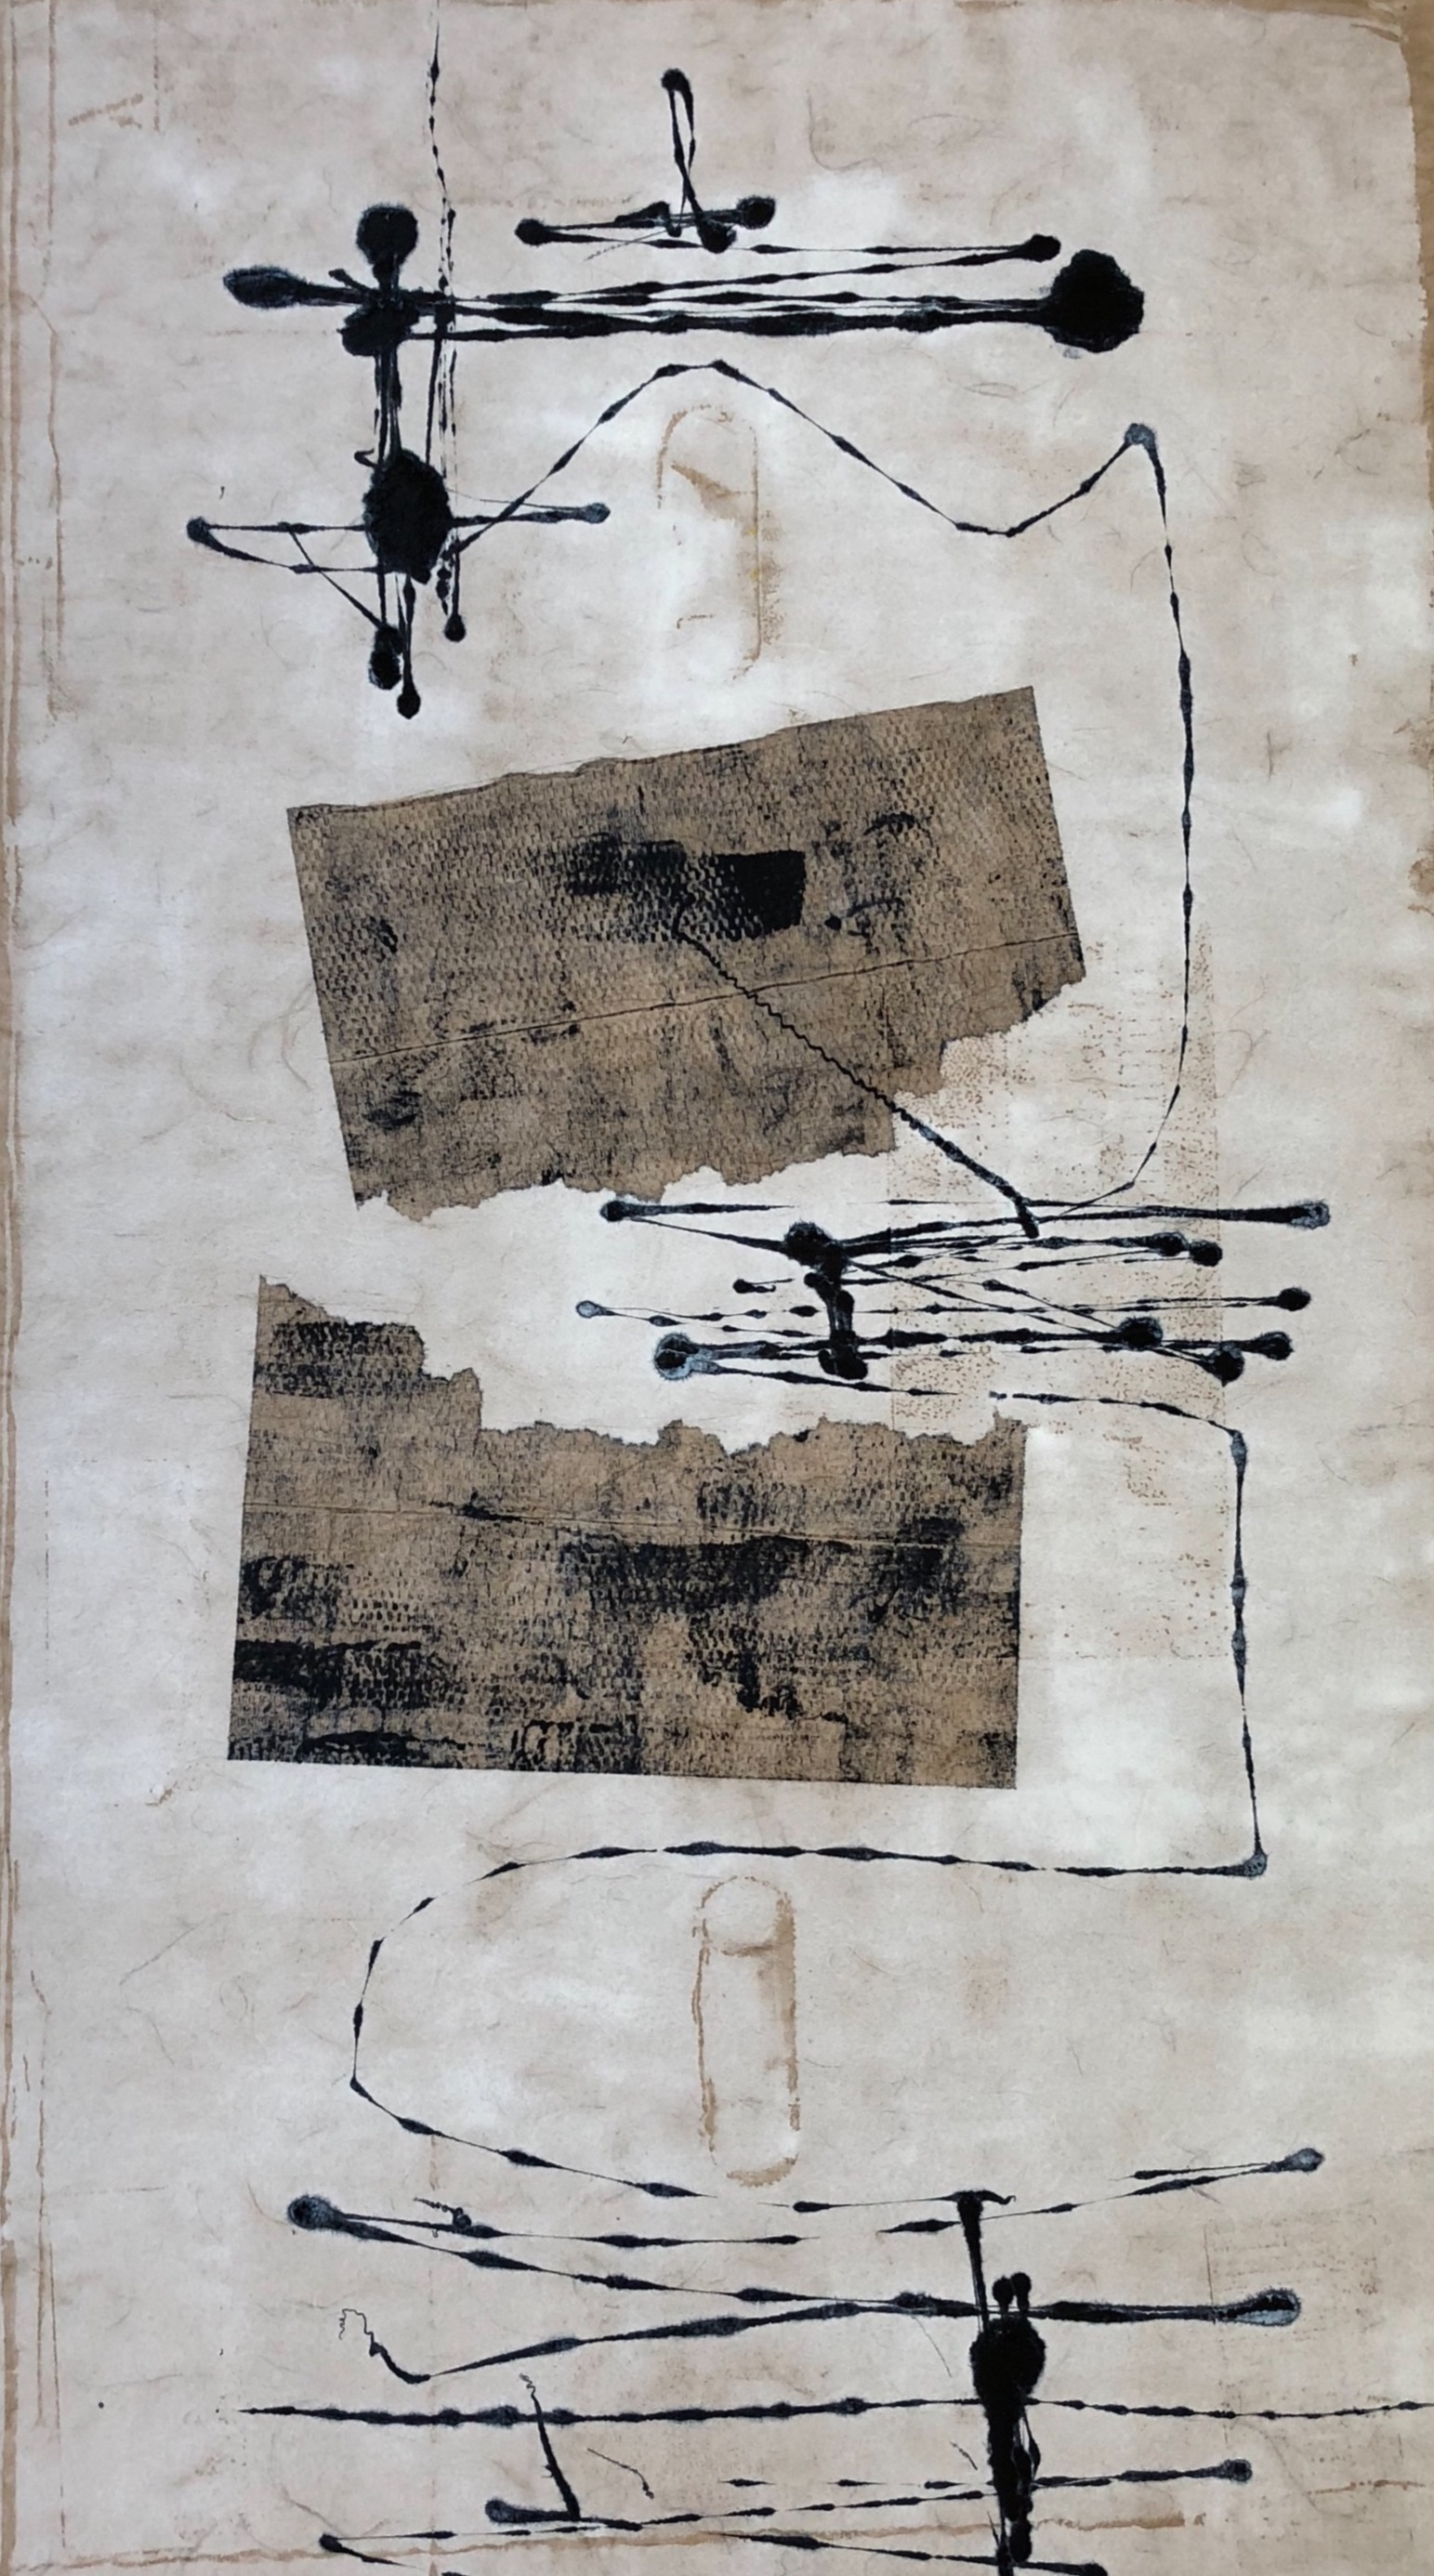 Lost and Found, 2018, monotype on rice paper, 37 x 25 in, SOLD